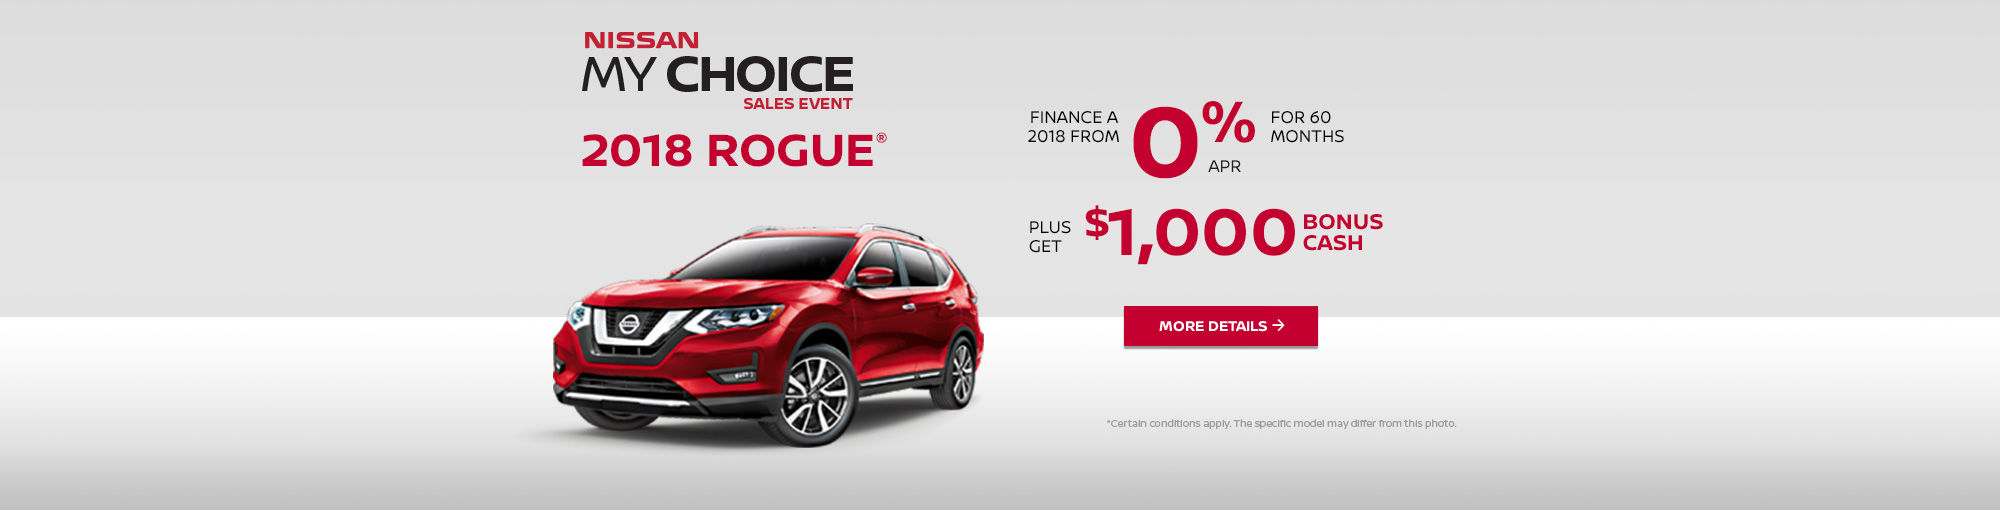 Nissan My Choice Sales Event - Rogue (web)